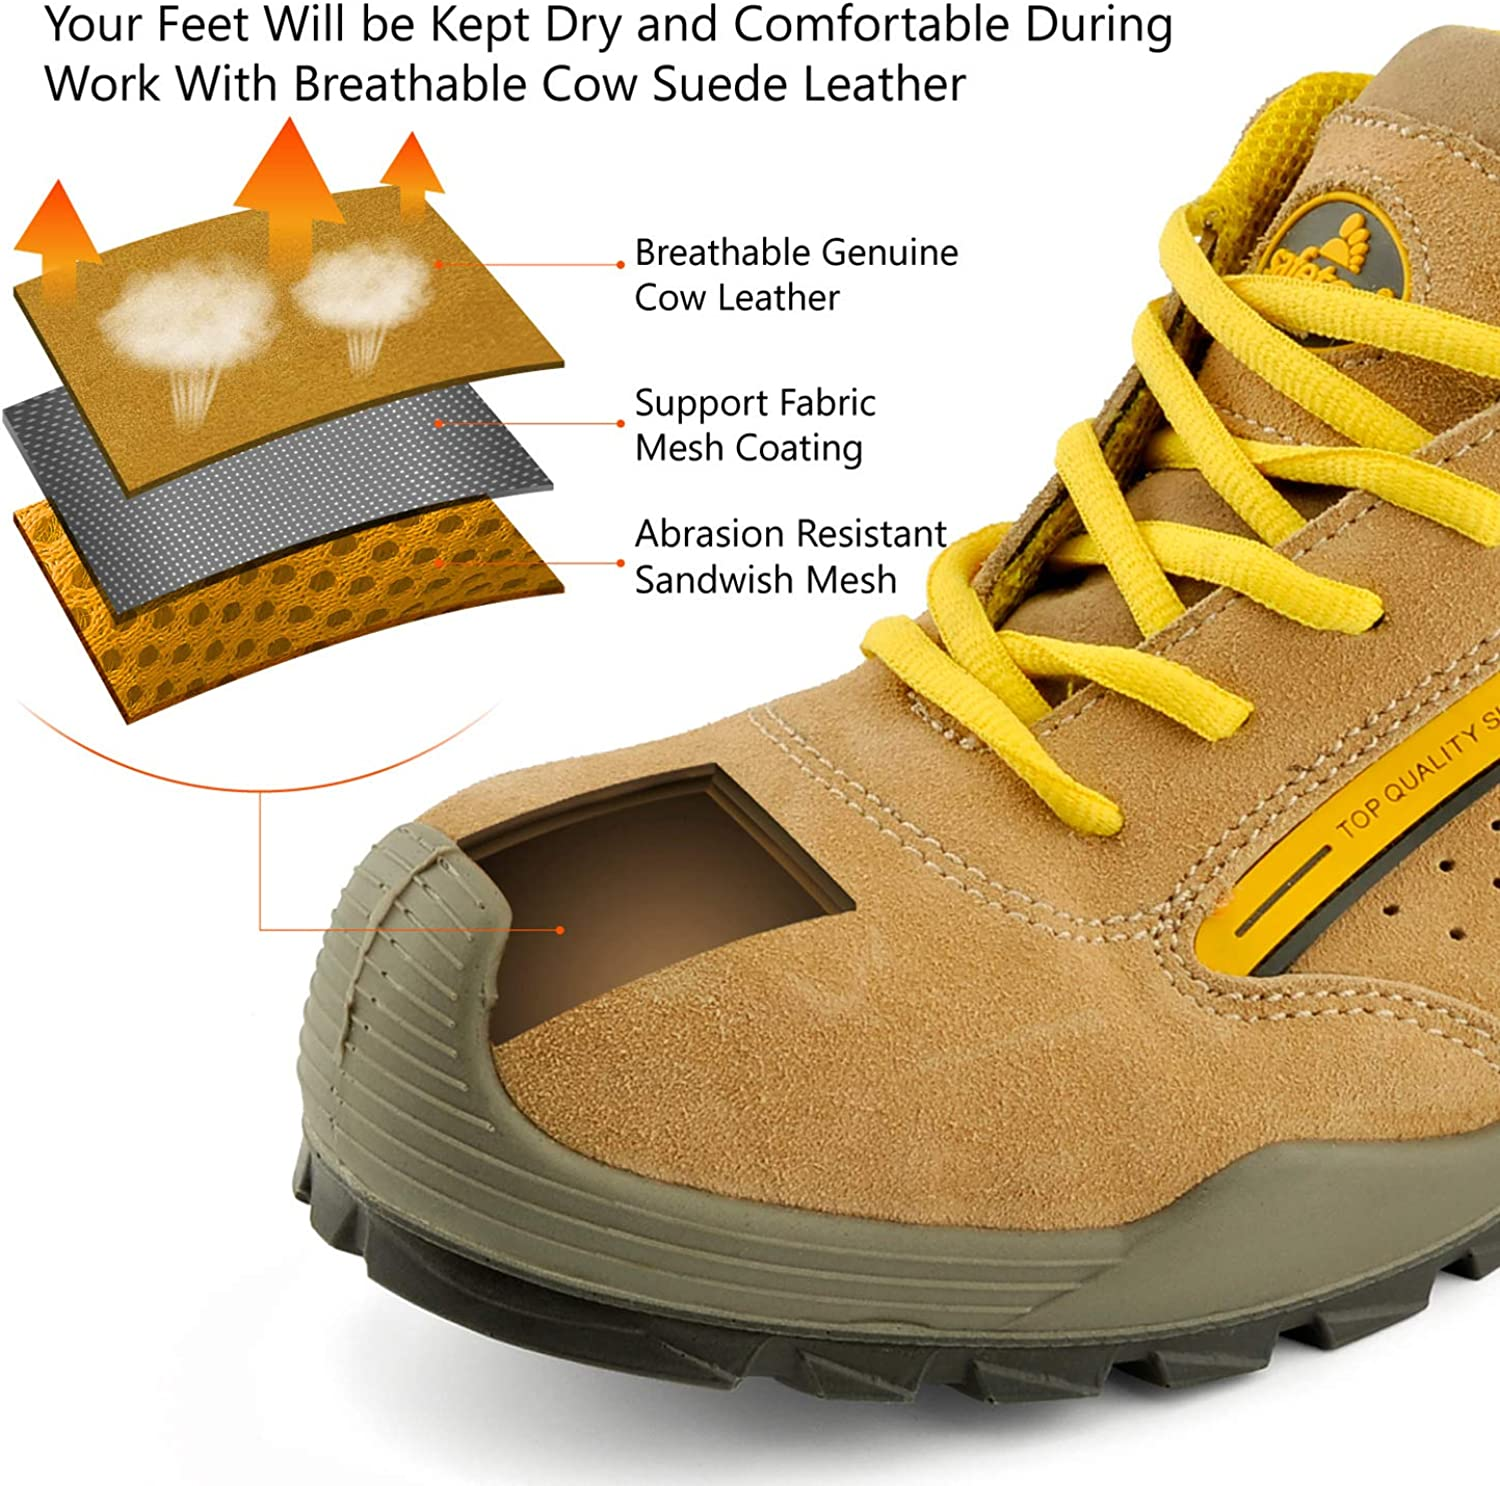 Safetoe Mens Safety Work Boots Steel Toe Cap Shoes Outdoor Hiking Sport Sneakers